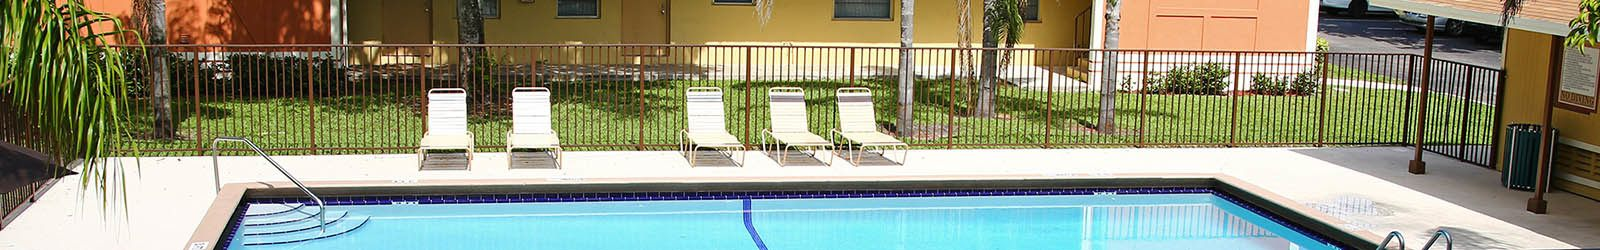 luxury 1 & 2 bedroom apartments in pembroke pines, fl